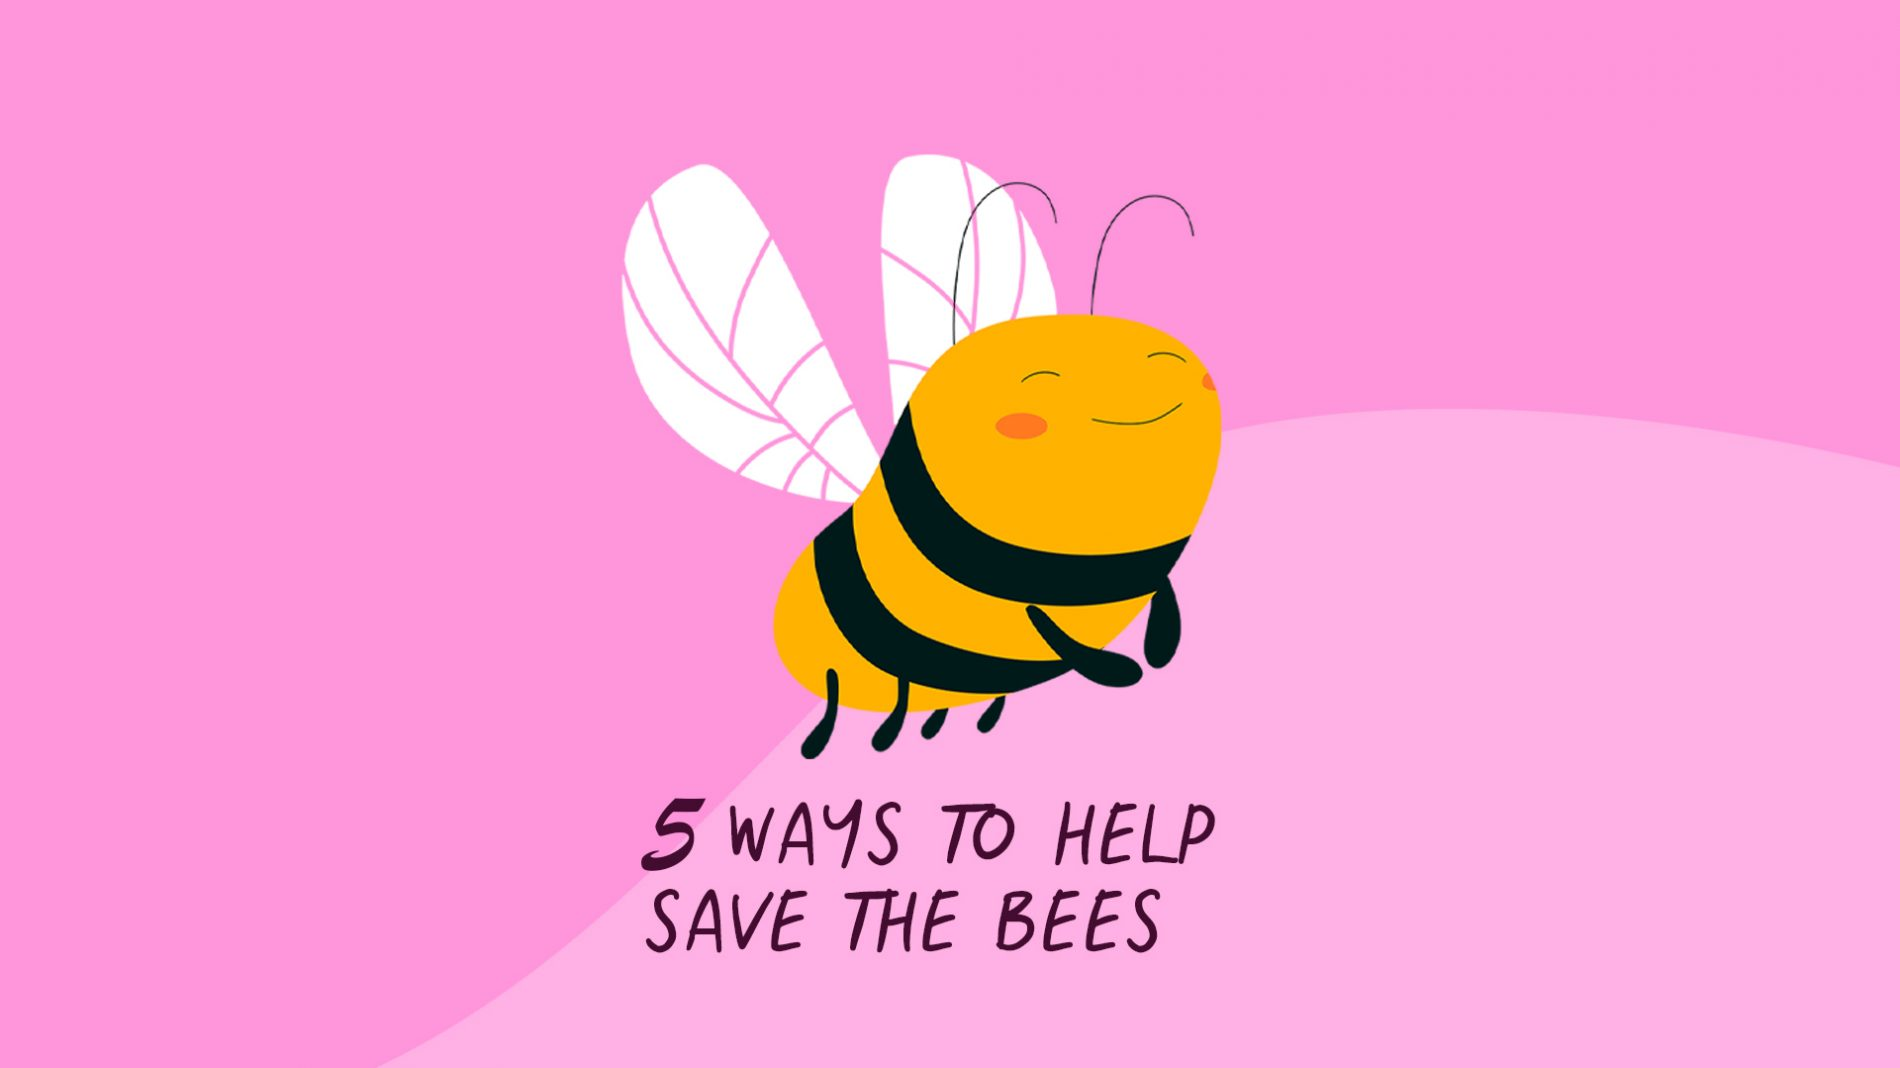 illustration of a smiling bee above text that says 5 ways to save the bees